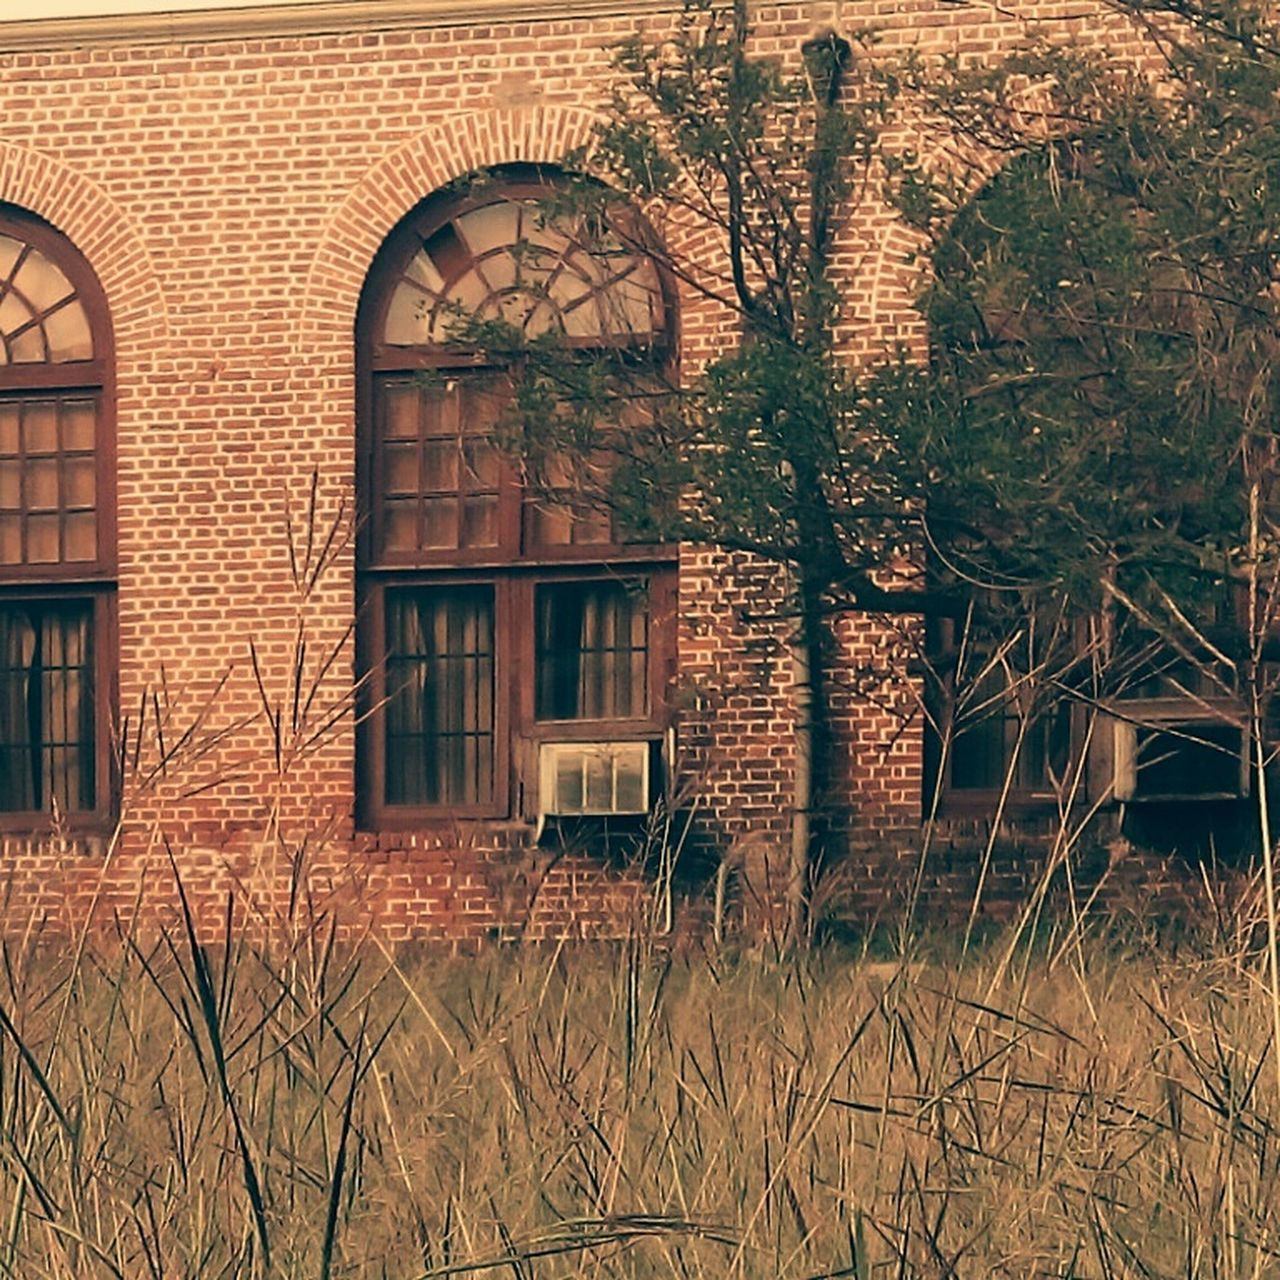 architecture, building exterior, built structure, day, abandoned, window, no people, outdoors, grass, tree, nature